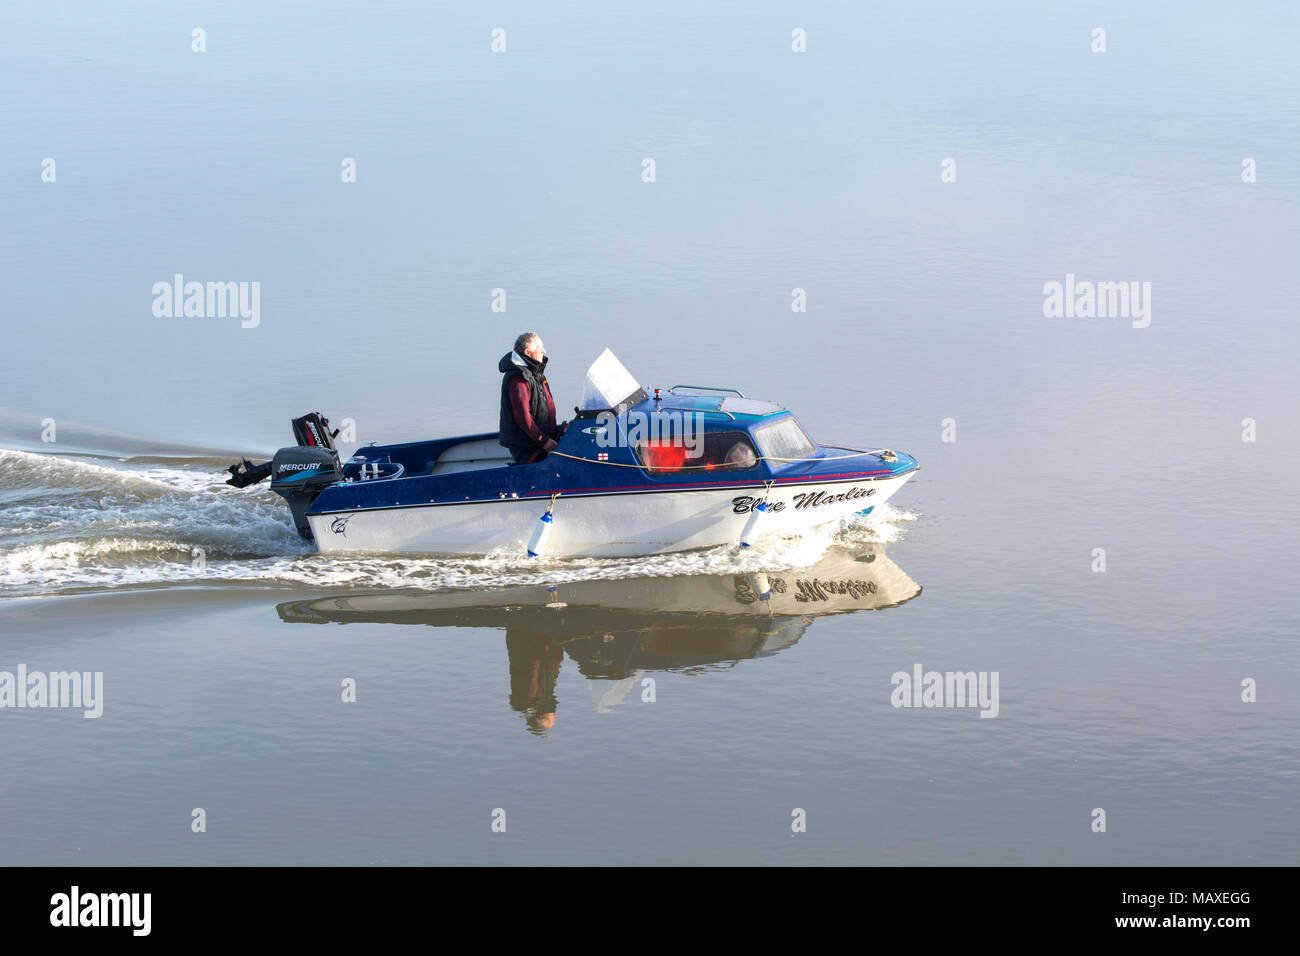 Small motor boat moving slowly on calm water - Stock Image